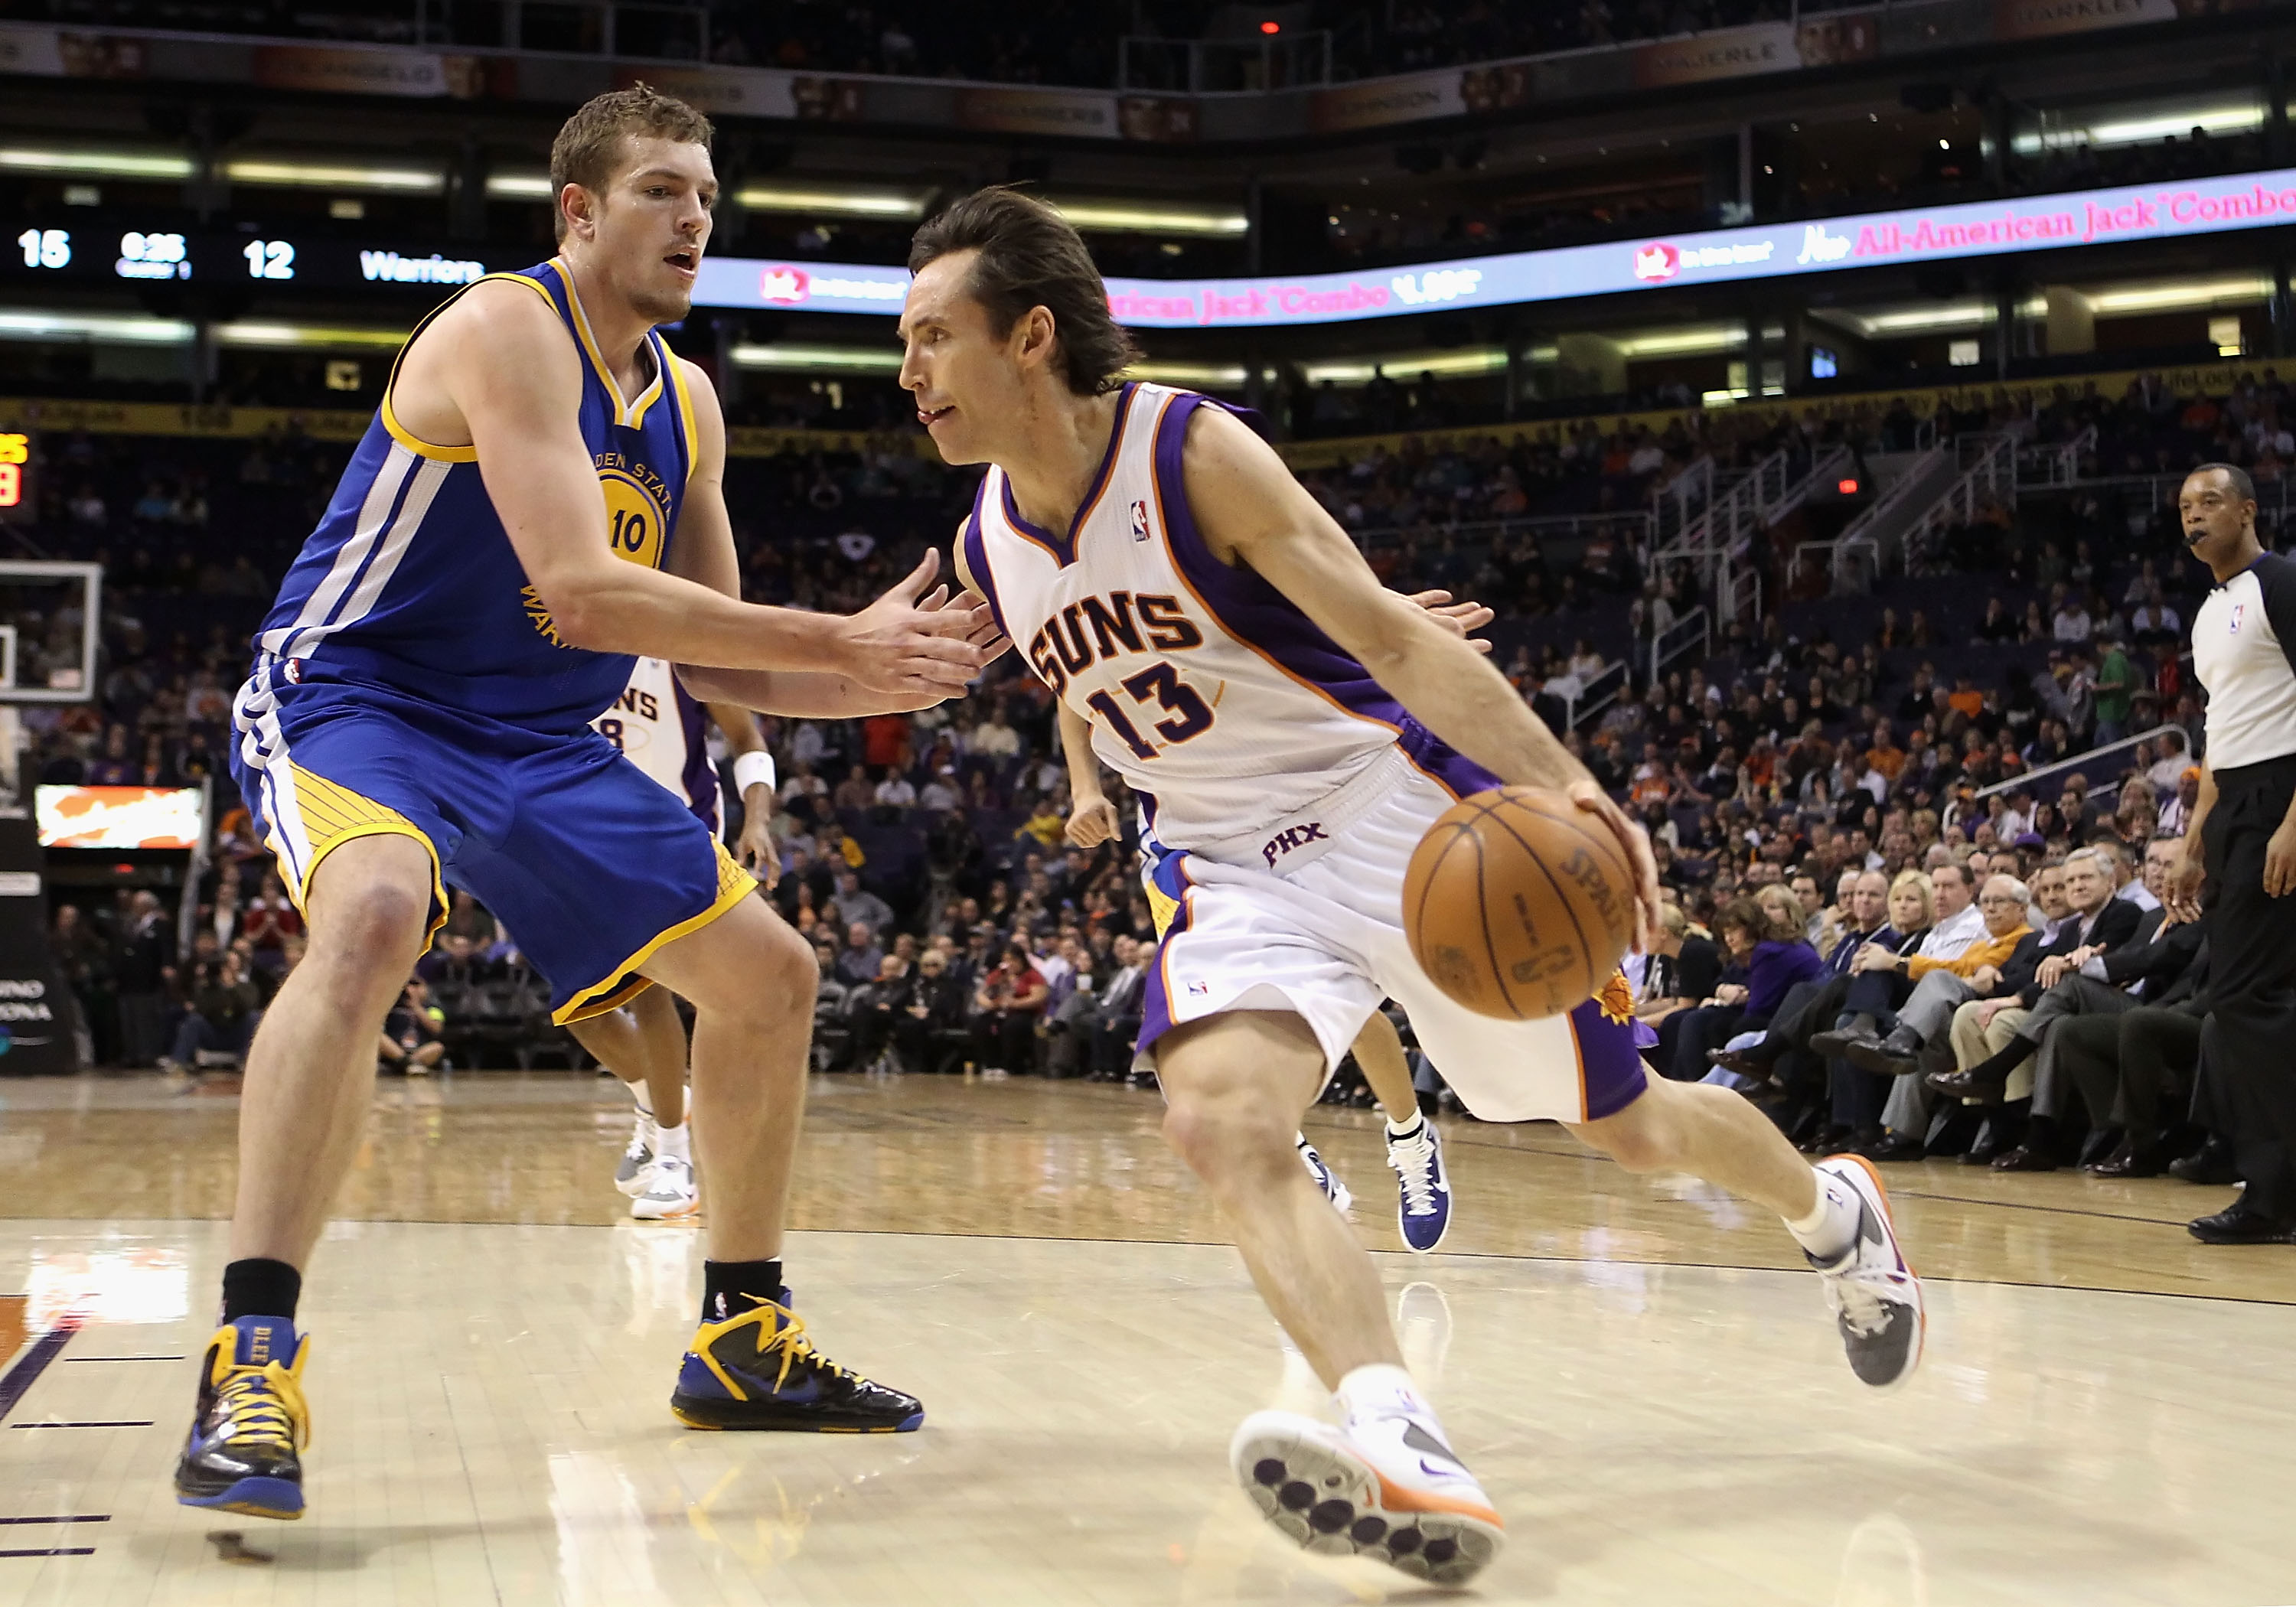 PHOENIX, AZ - FEBRUARY 10:  Steve Nash #13 of the Phoenix Suns drives the ball during the NBA game against the Golden State Warriors at US Airways Center on February 10, 2011 in Phoenix, Arizona.  The Suns defeated the Warriors 112-88.  NOTE TO USER: User